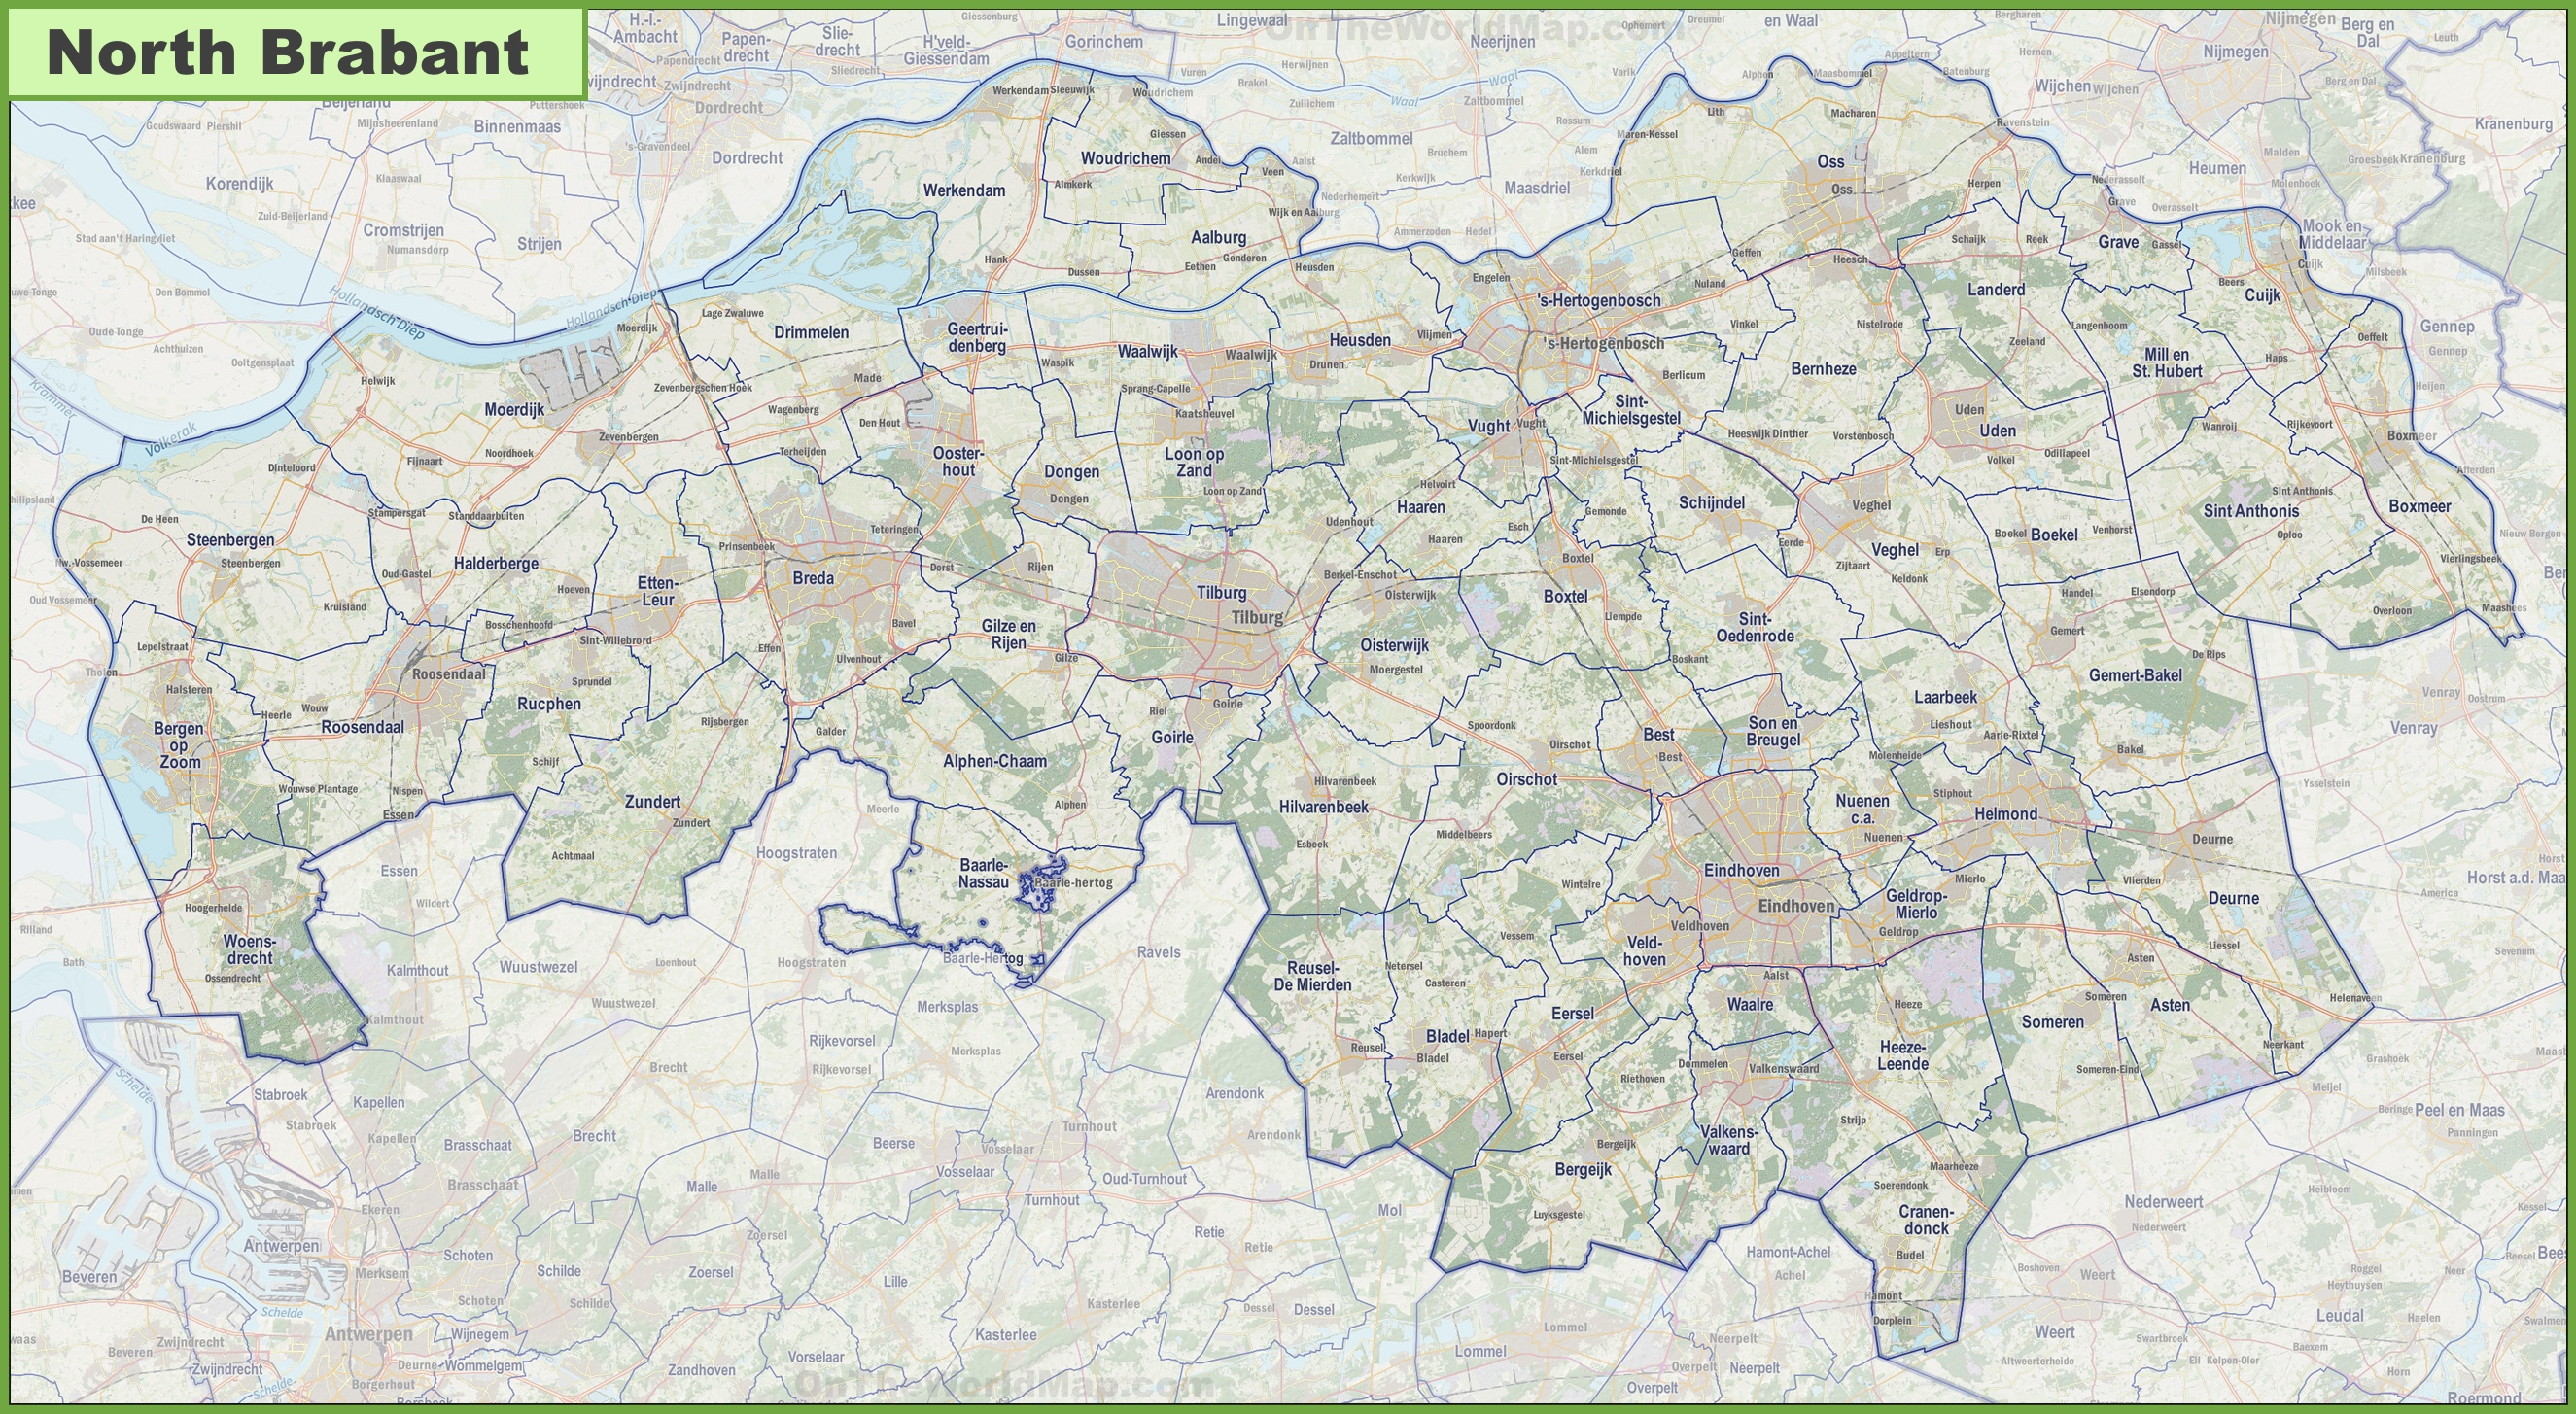 Map of North Brabant with cities and towns